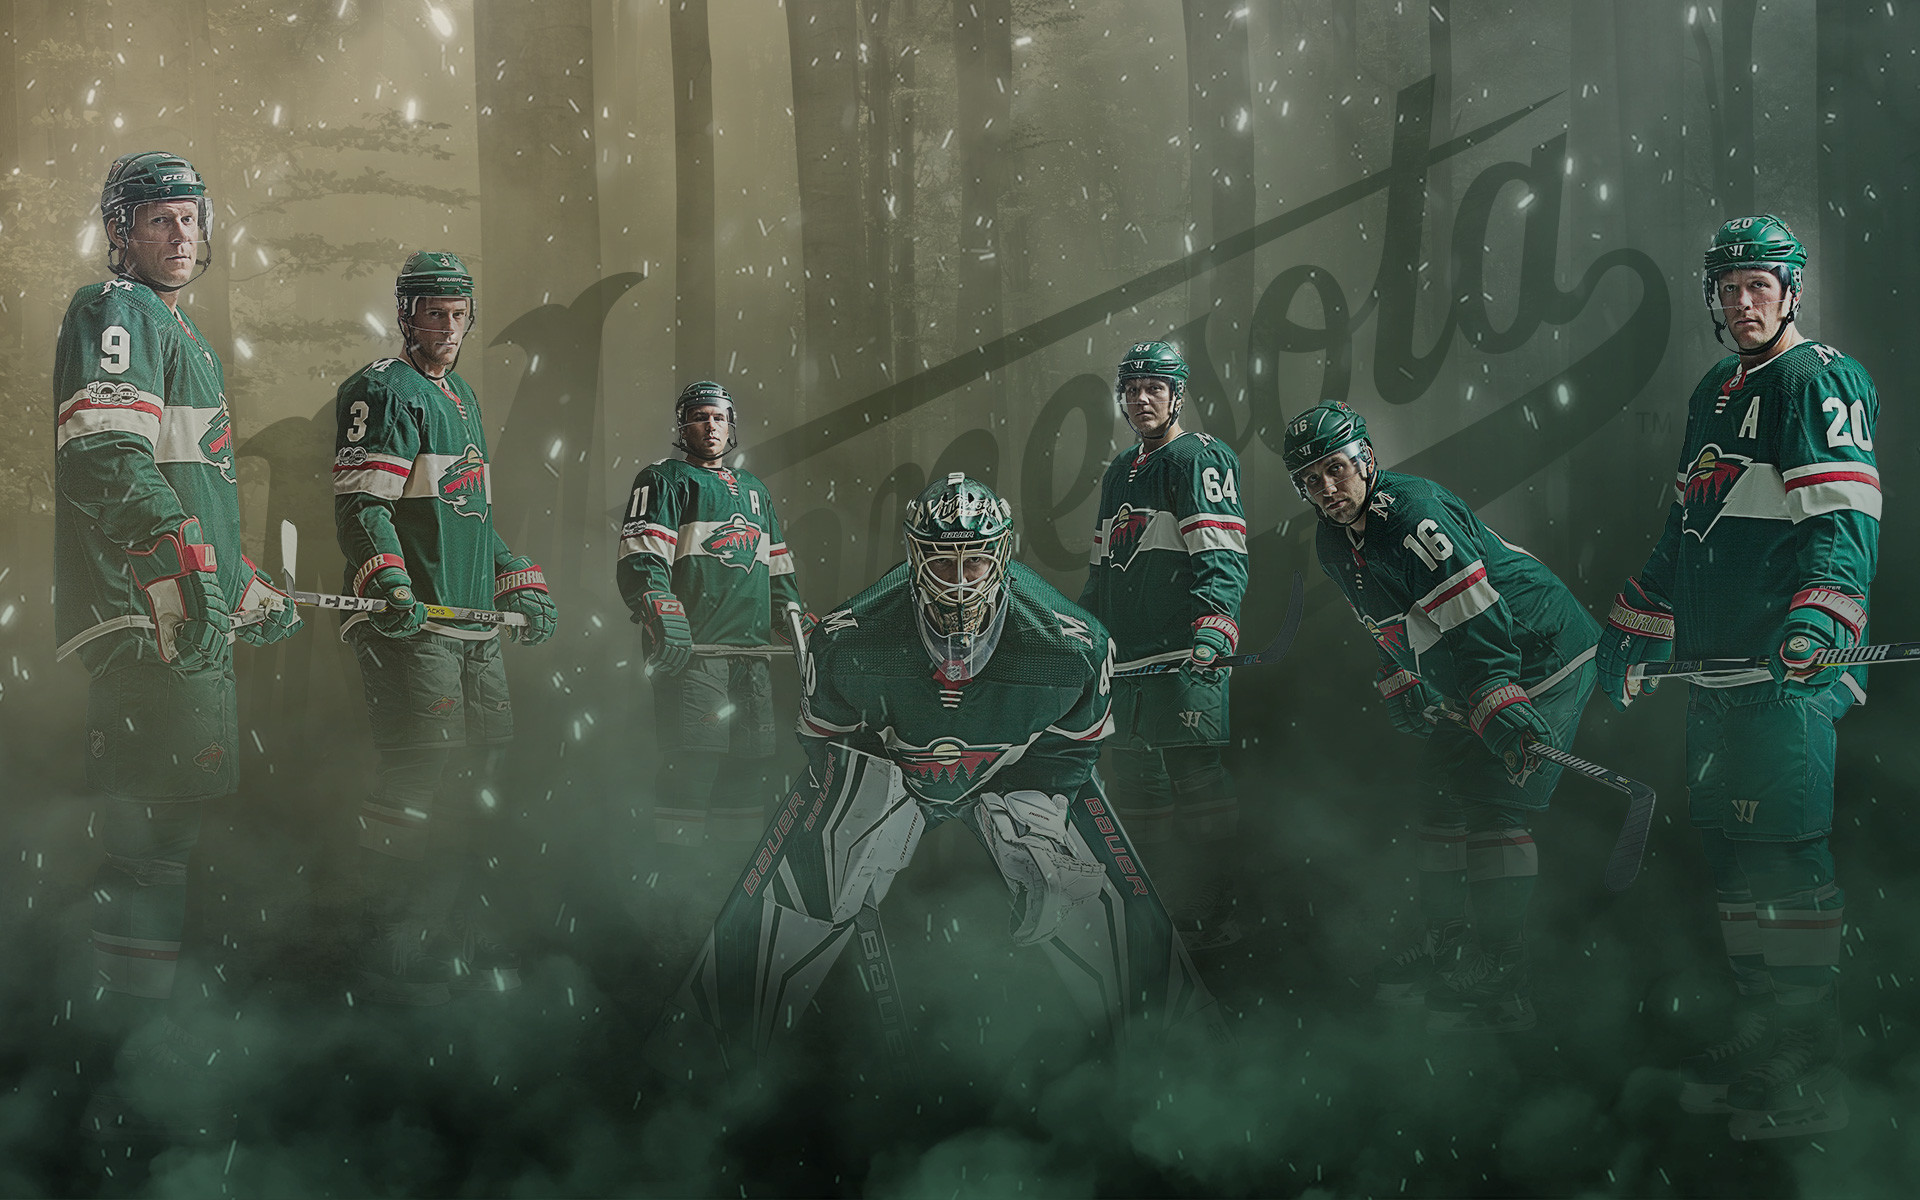 Minnesota Wild Wallpaper 1